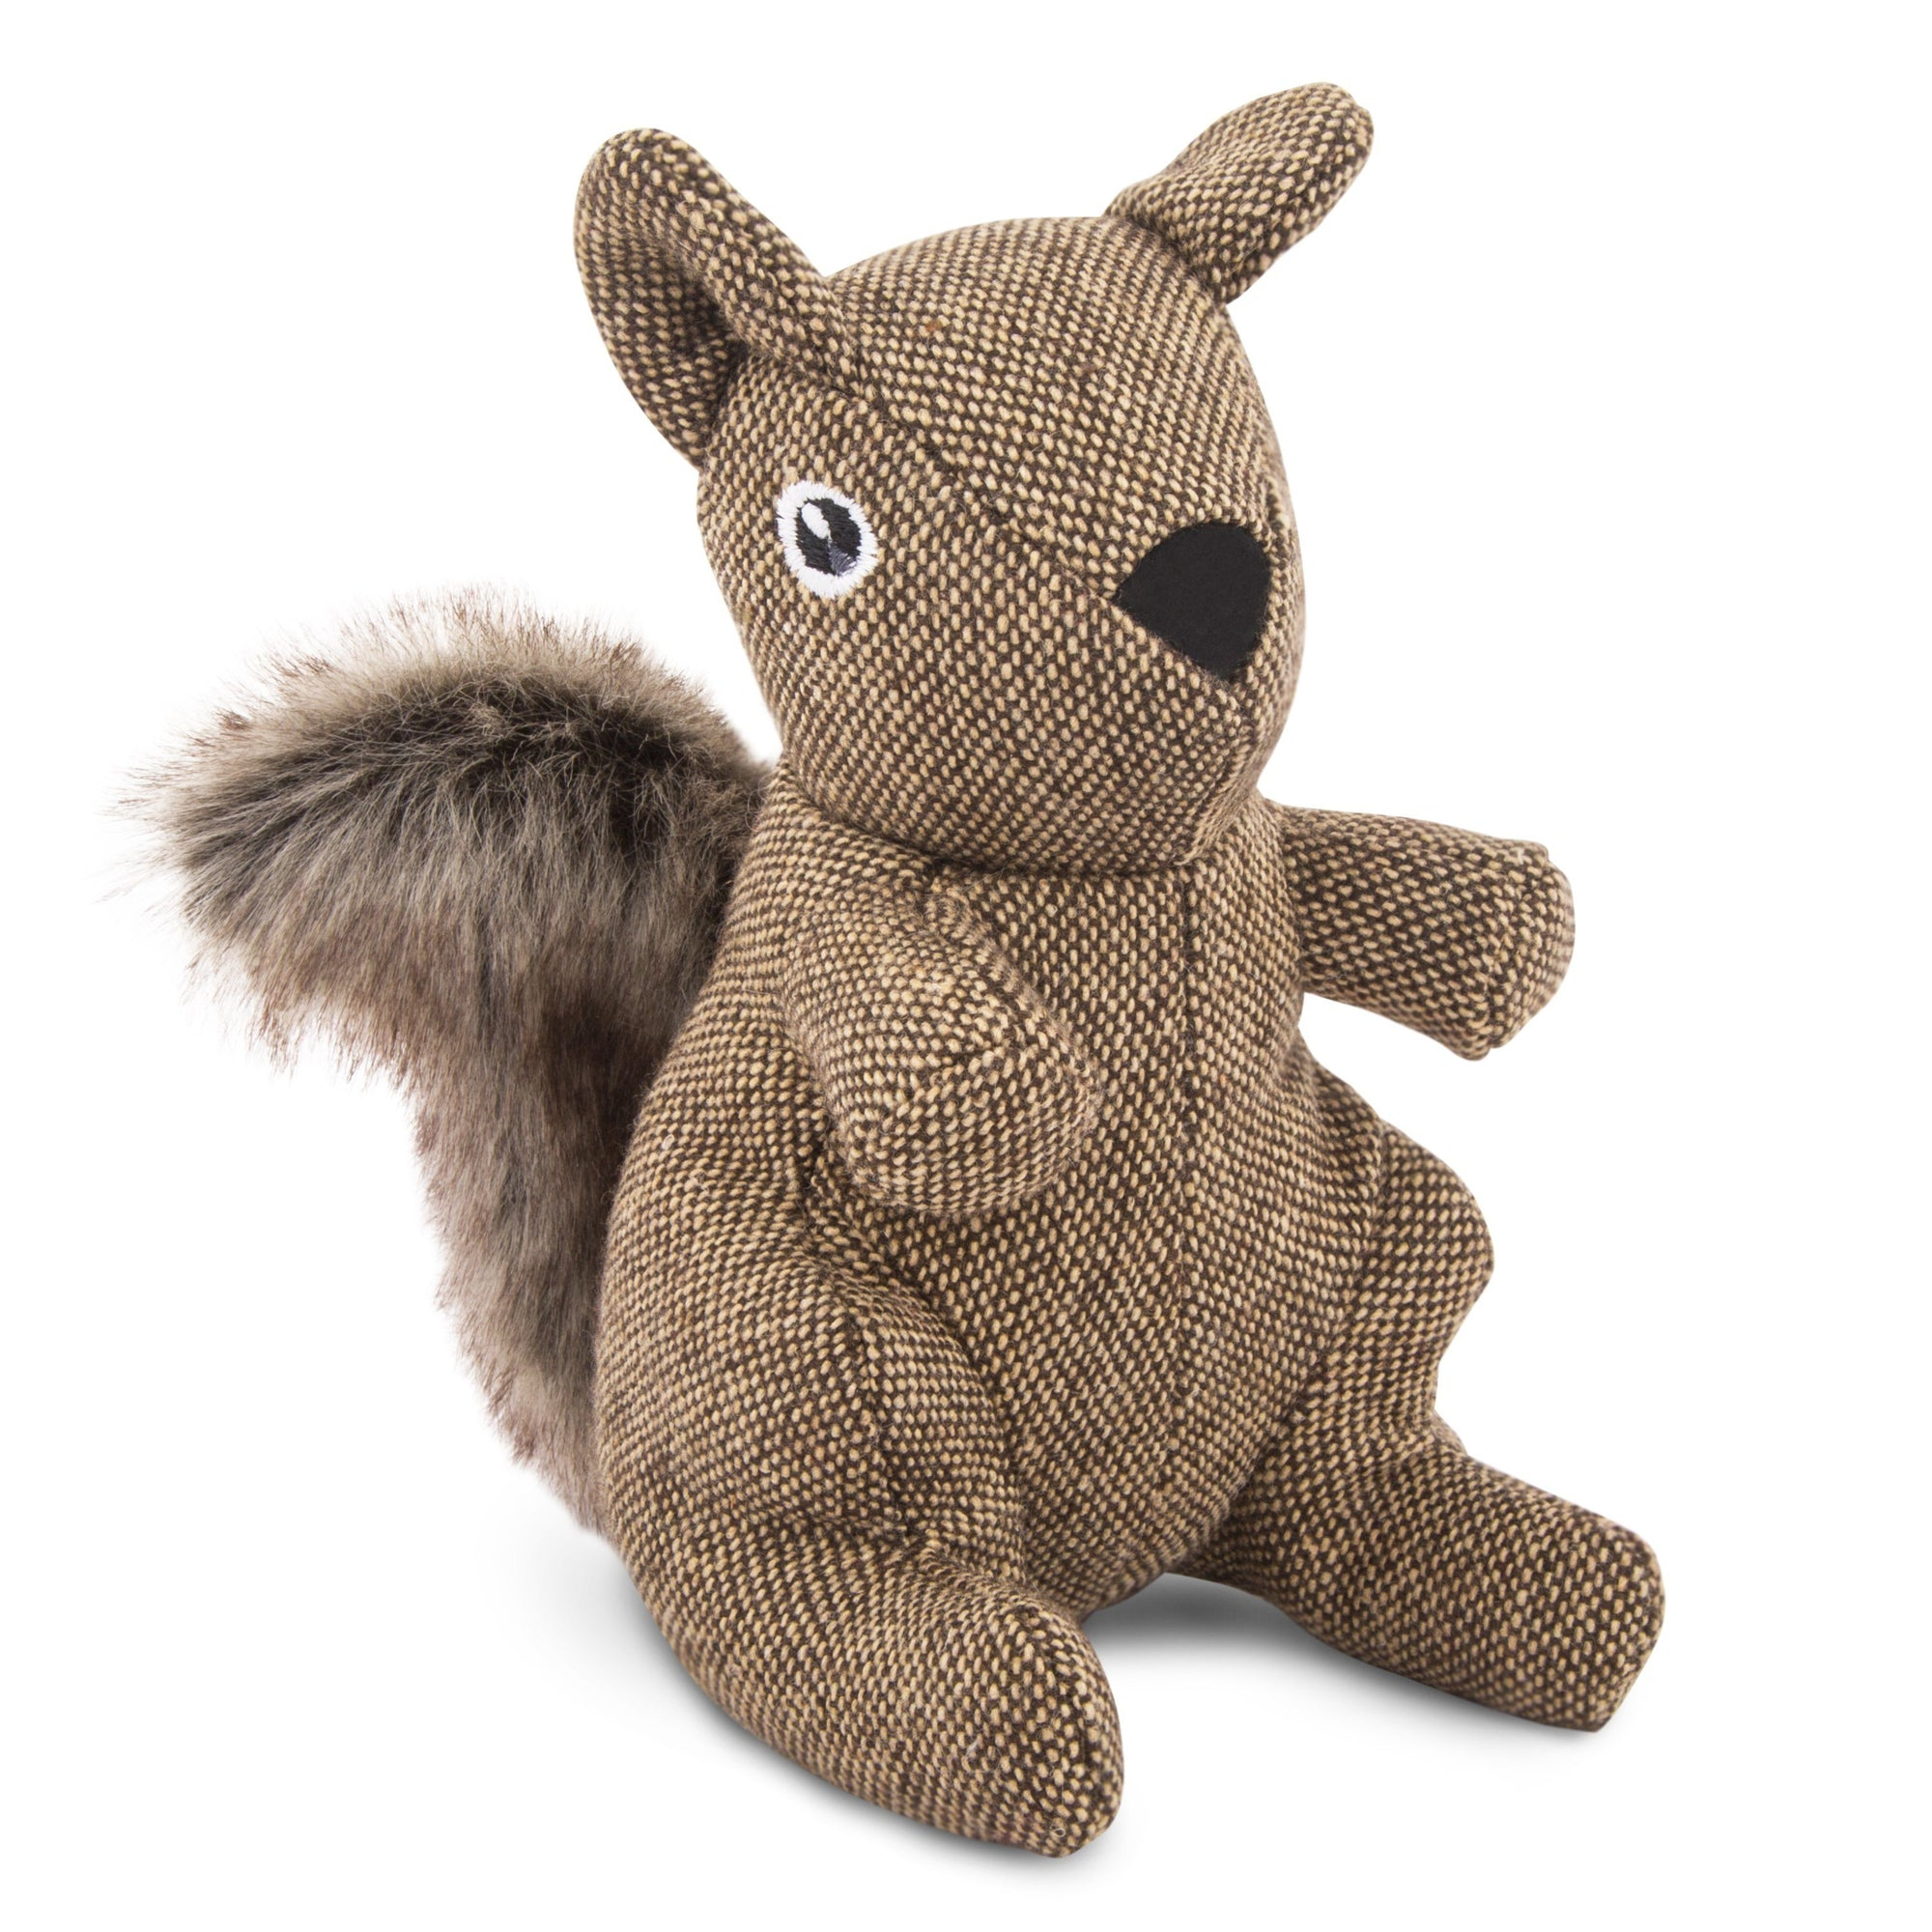 Plush Toy - Tweed Squirrel Plush Dog Toy